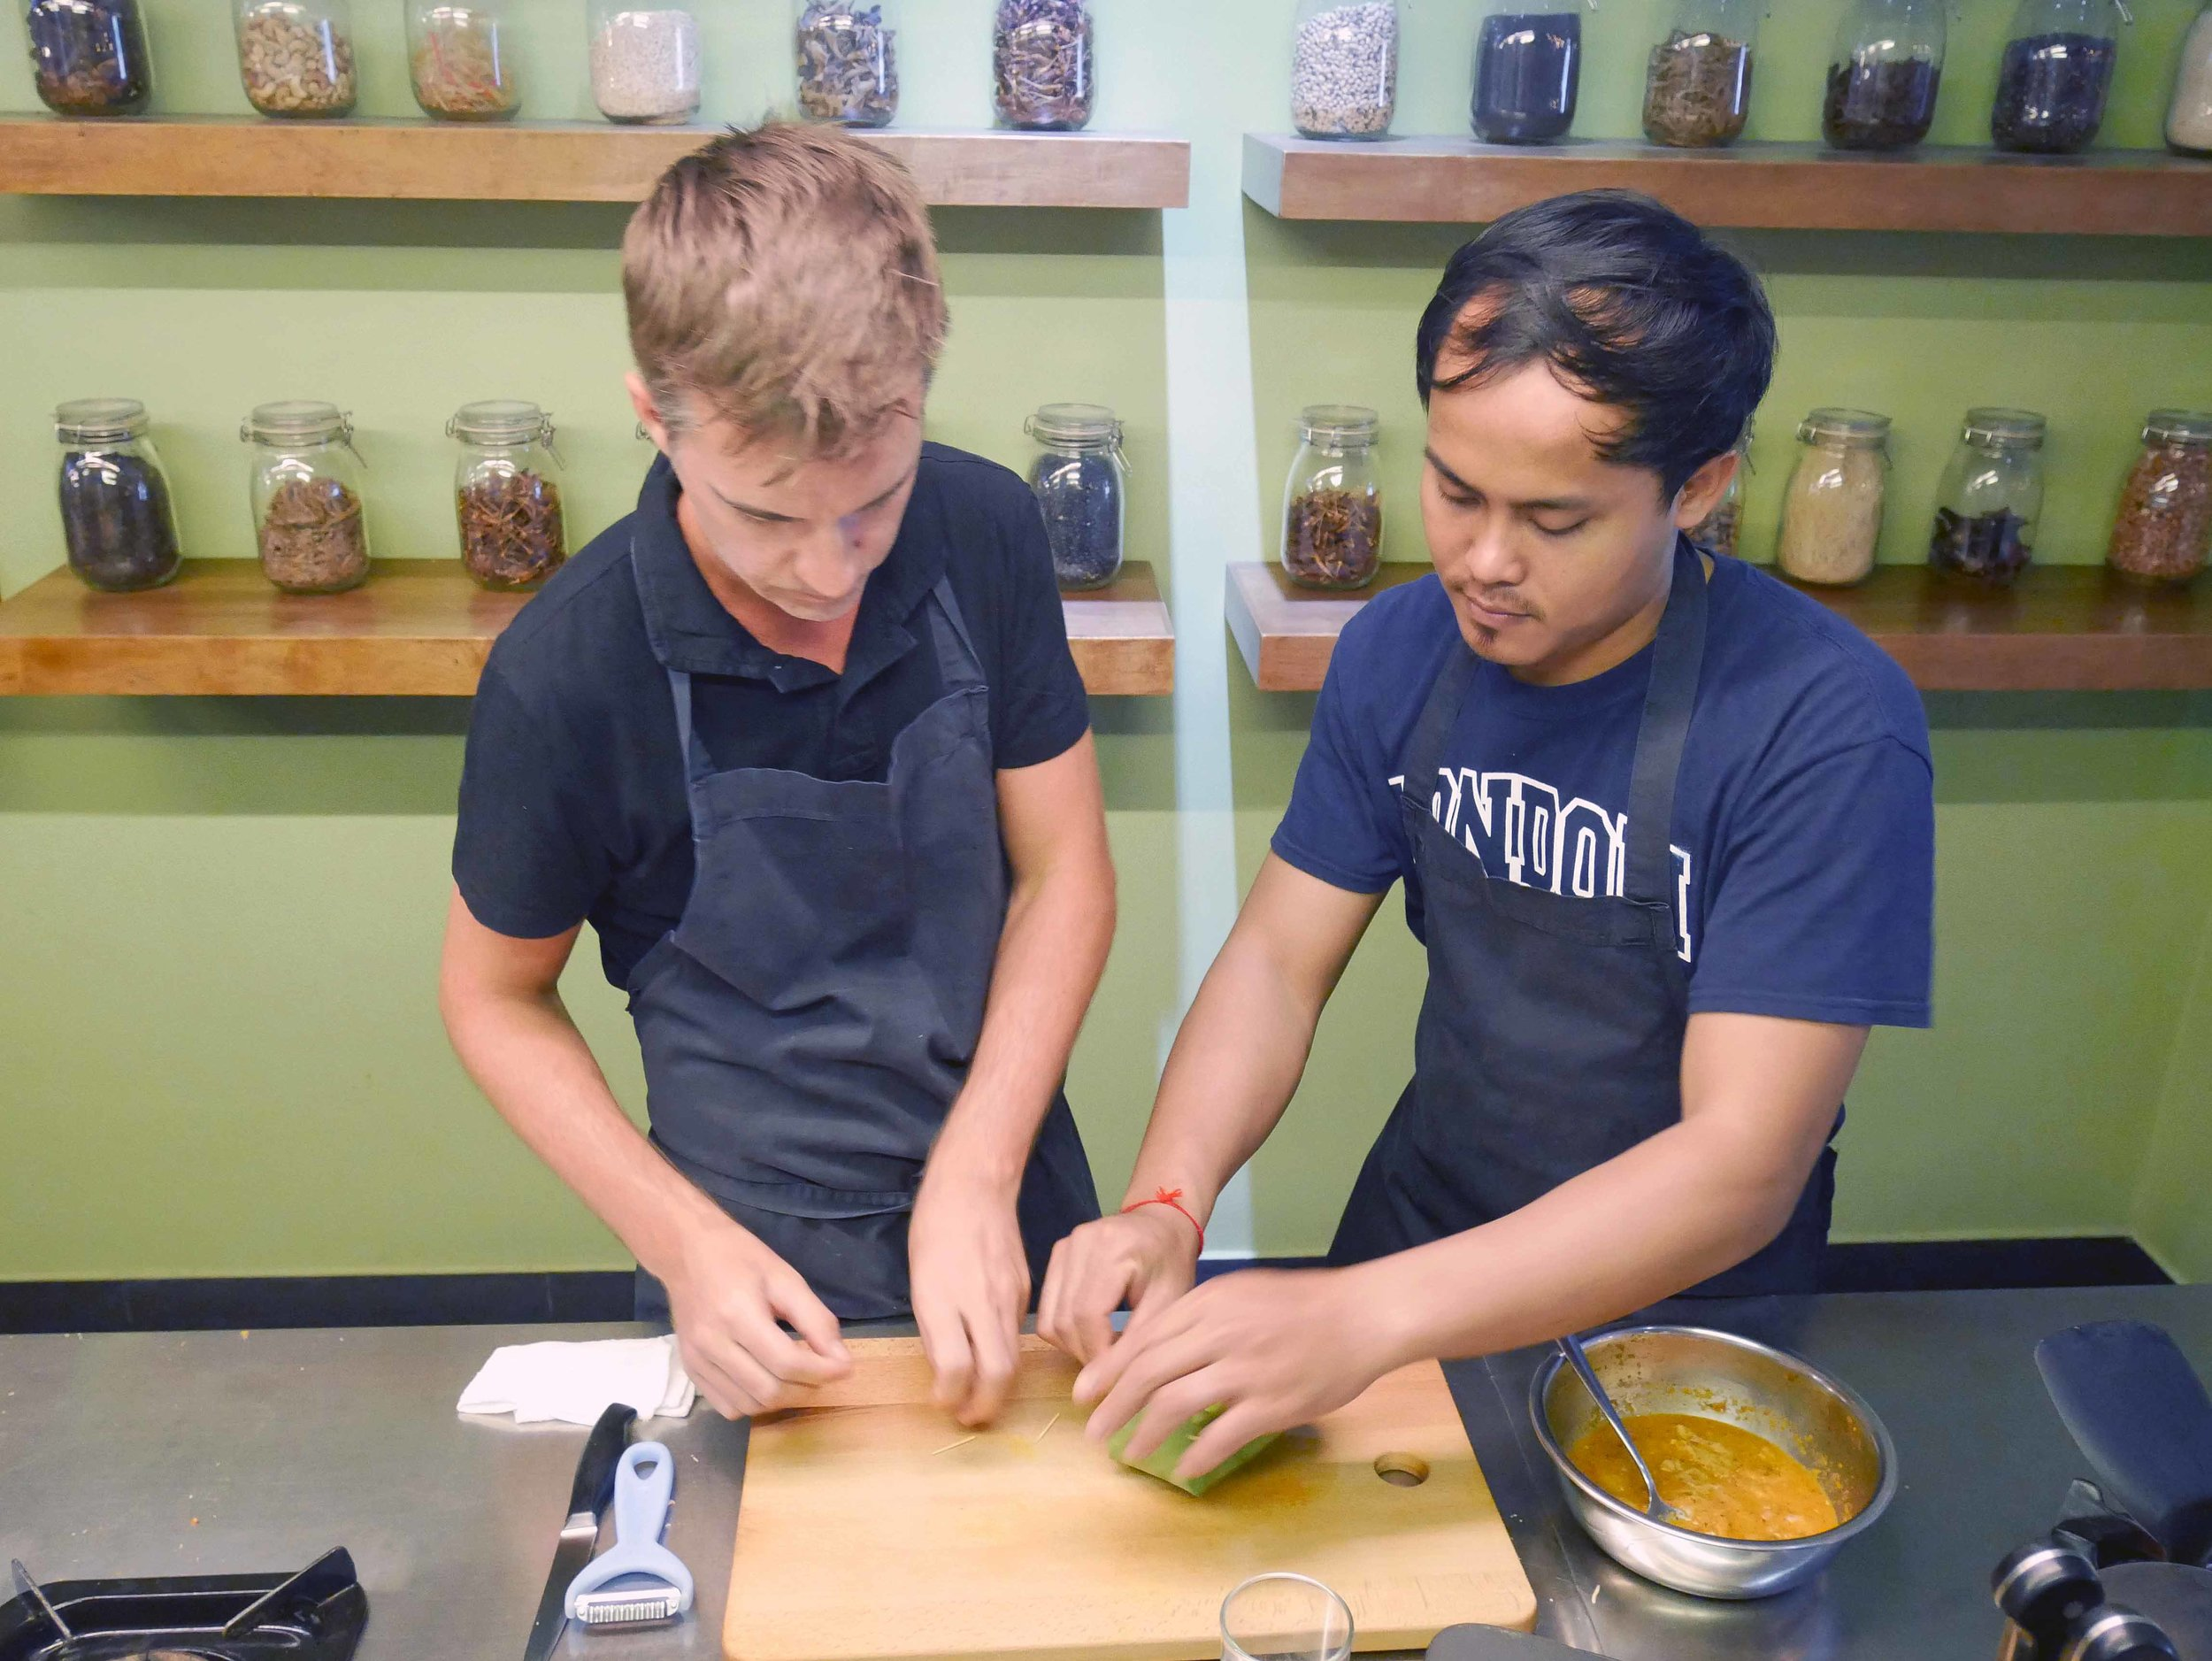 Trey gets help from Khai, our instructor, to fashion a bowl from banana leaf for the Amok dish (March 10).